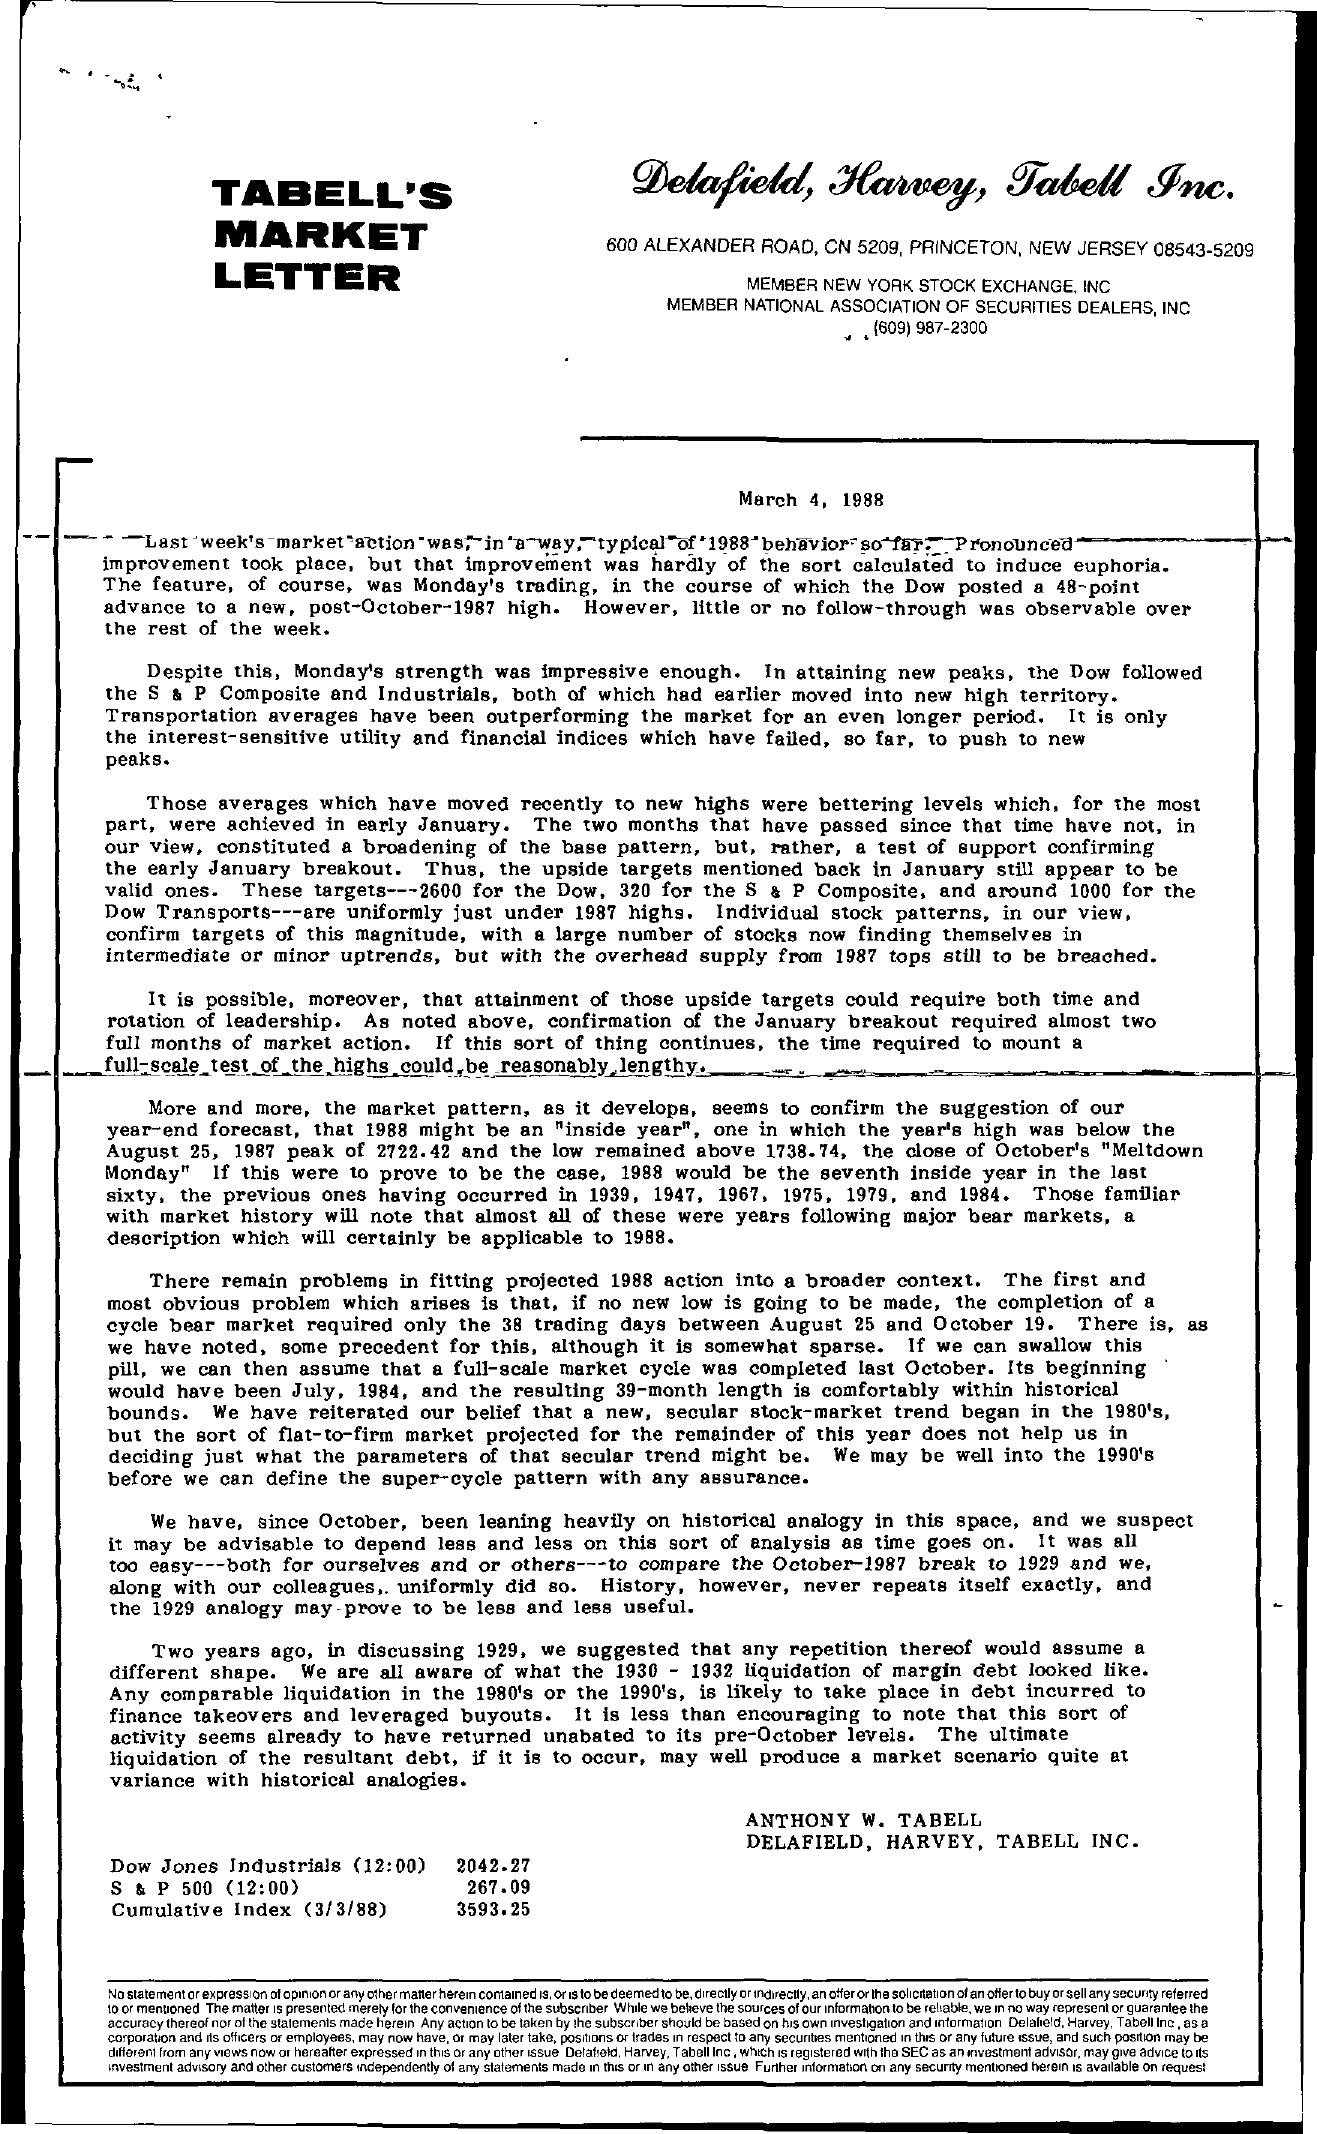 Tabell's Market Letter - March 04, 1988